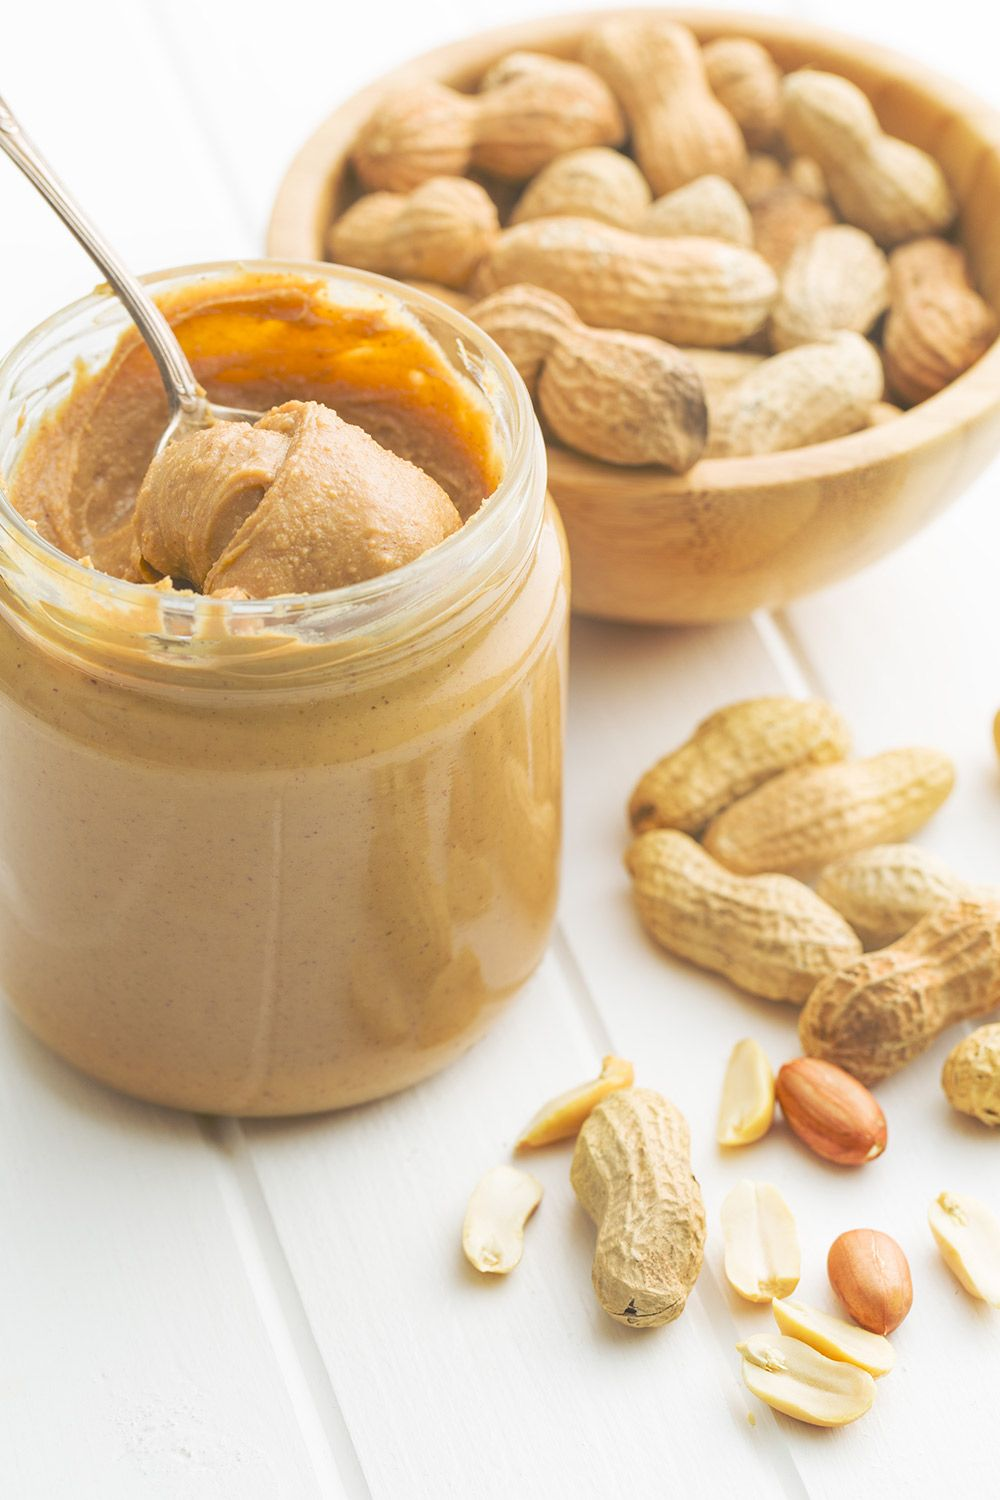 The First-Ever Pill for Peanut Allergies Is Coming